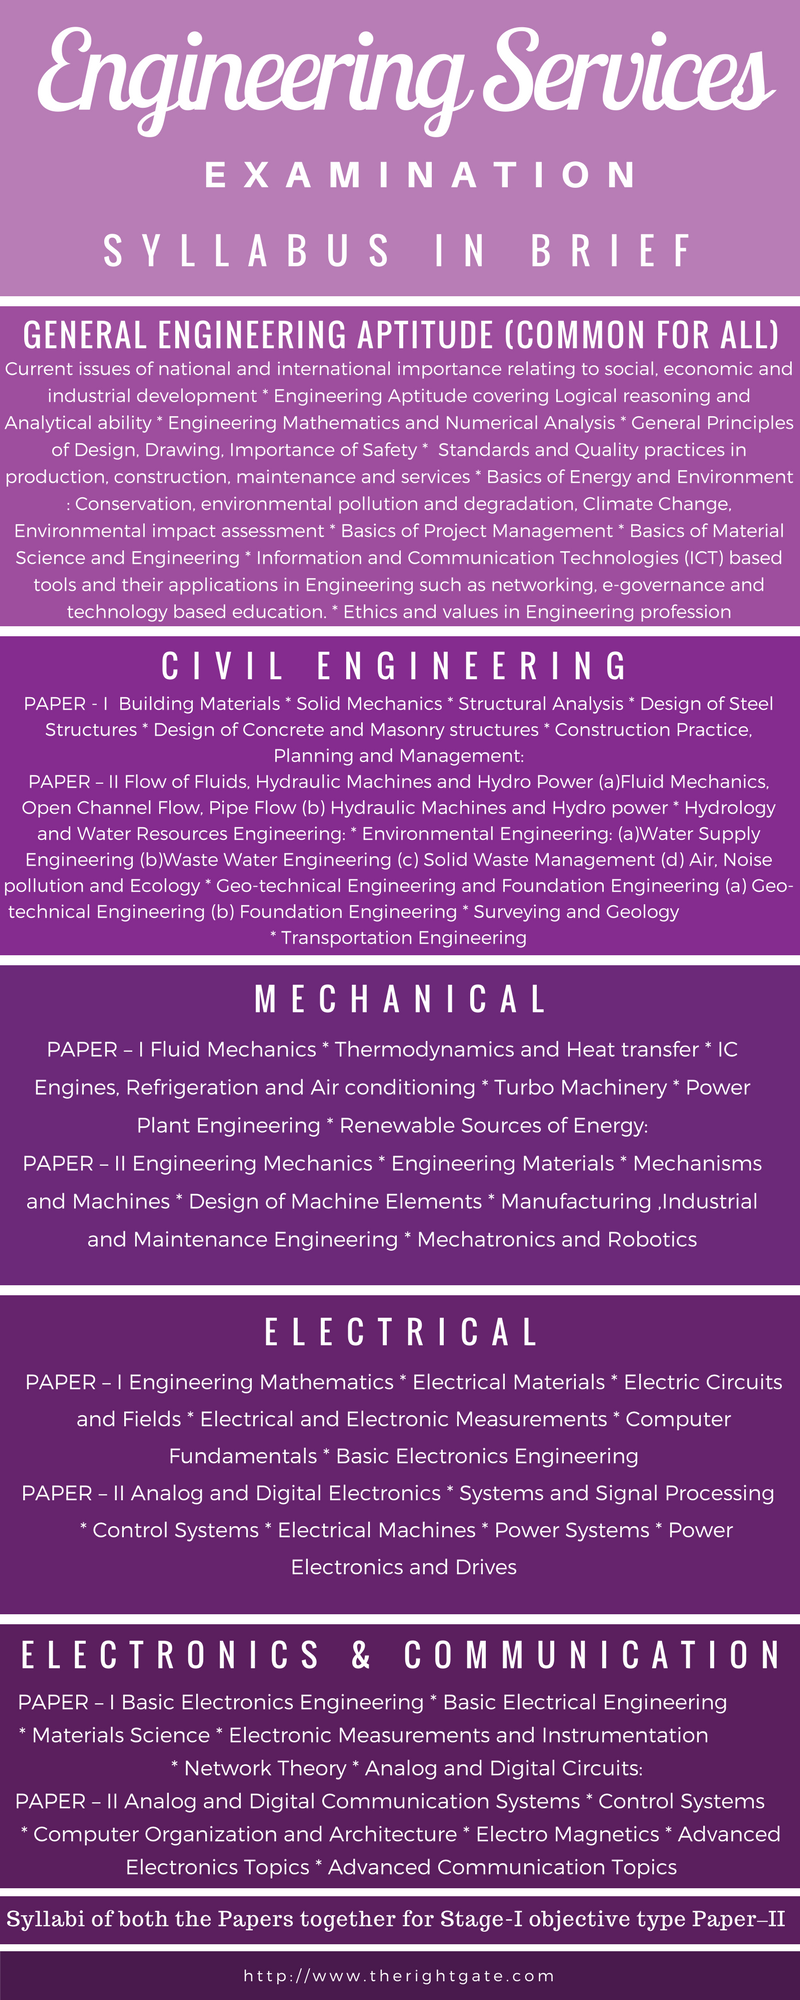 Engineering Services Examination Ese Overview Ese Engineering